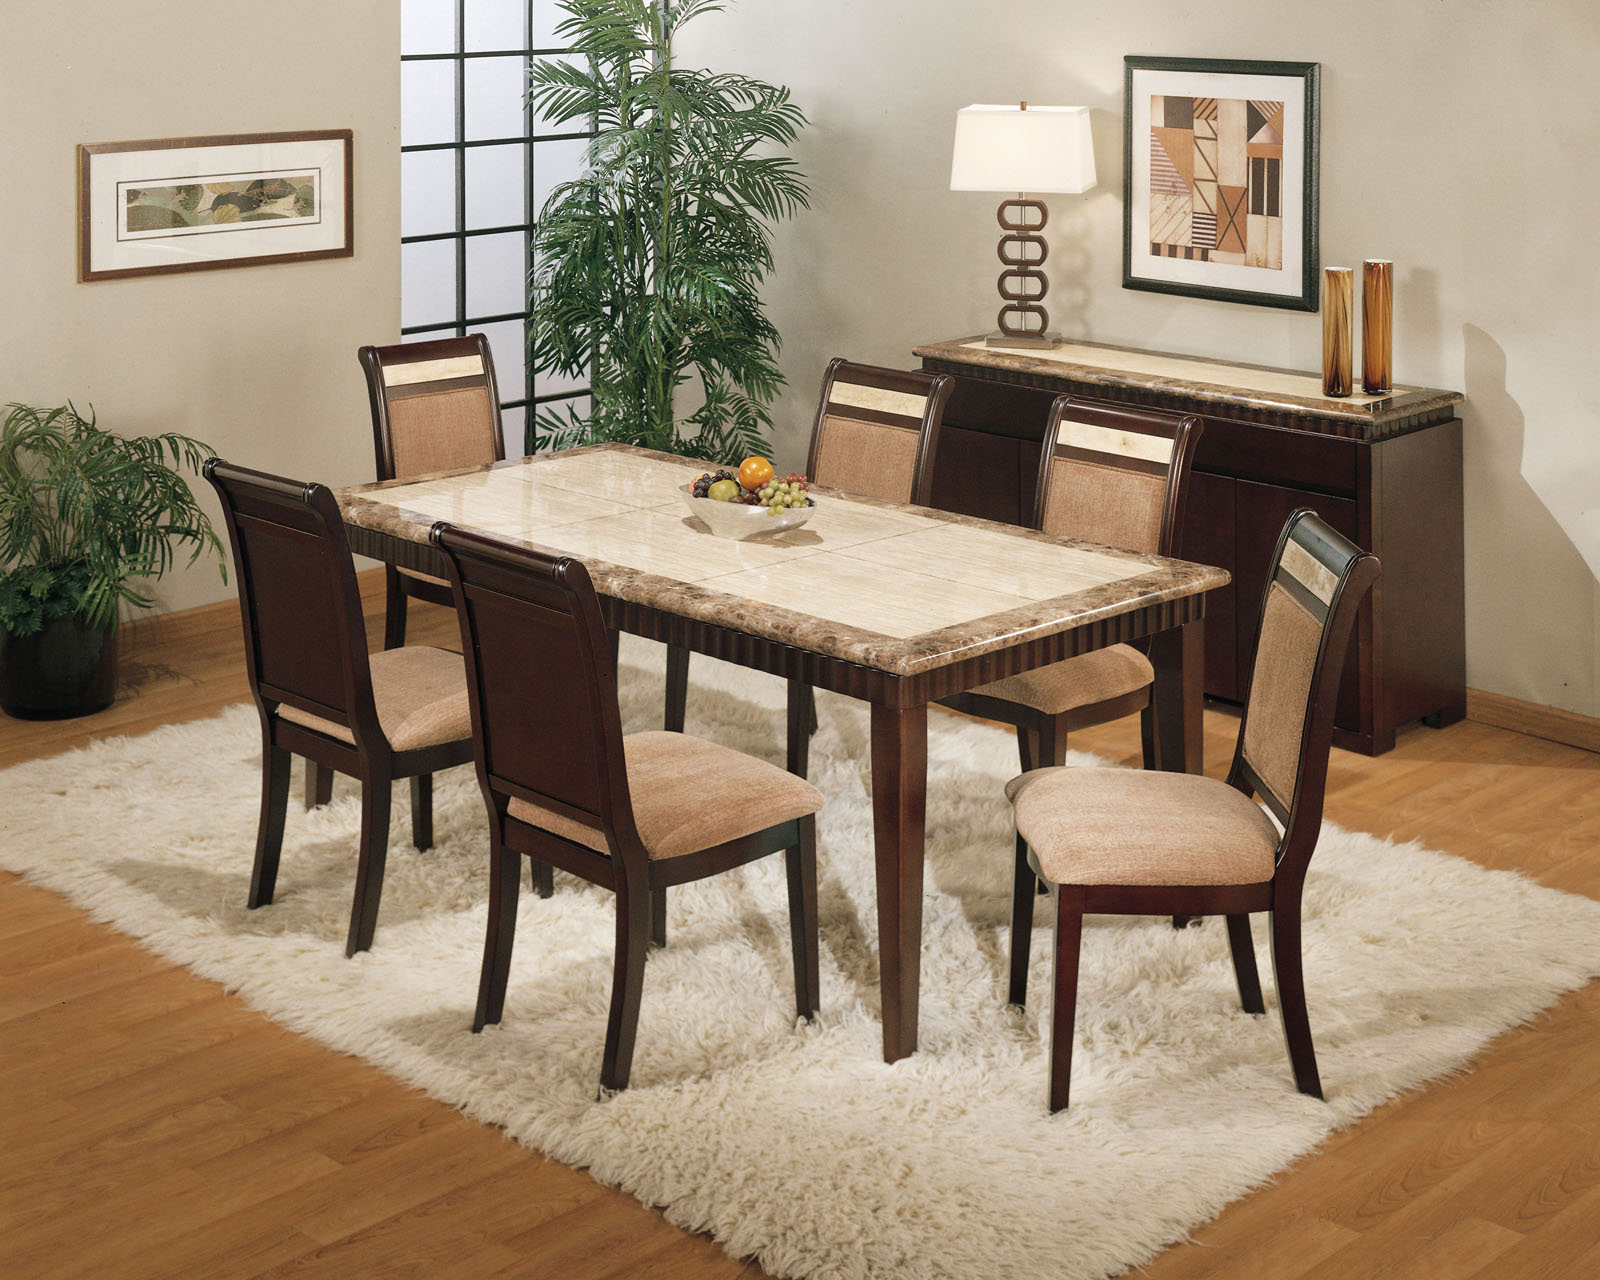 Rectangular Granite Dining Table Set With White Fur Rug Source